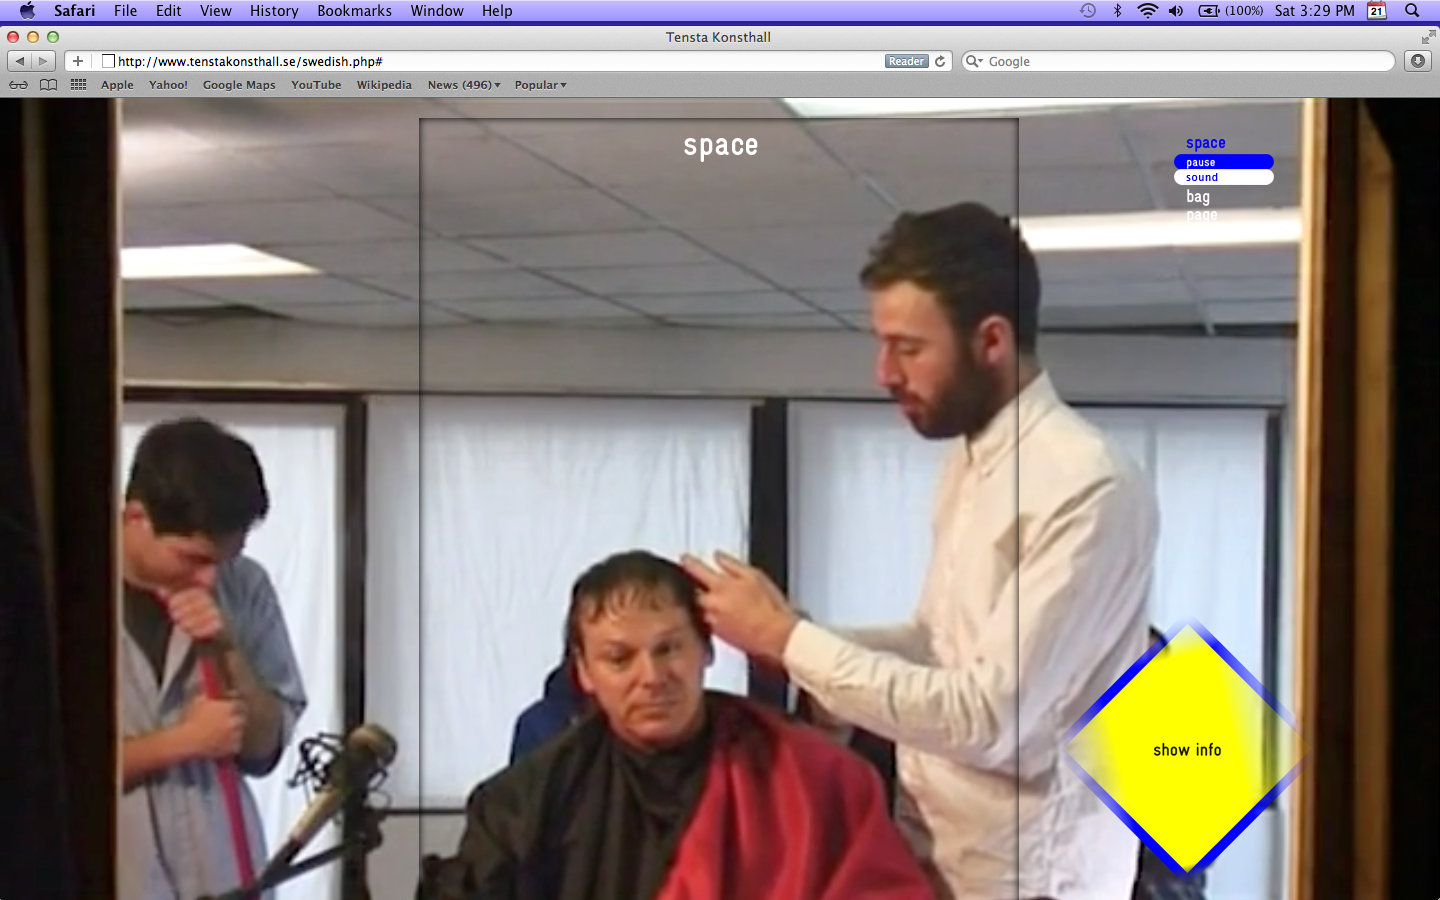 The Haircut Before The Party, Interview with David Graeber, Space på tenstakonsthall.se, 2012